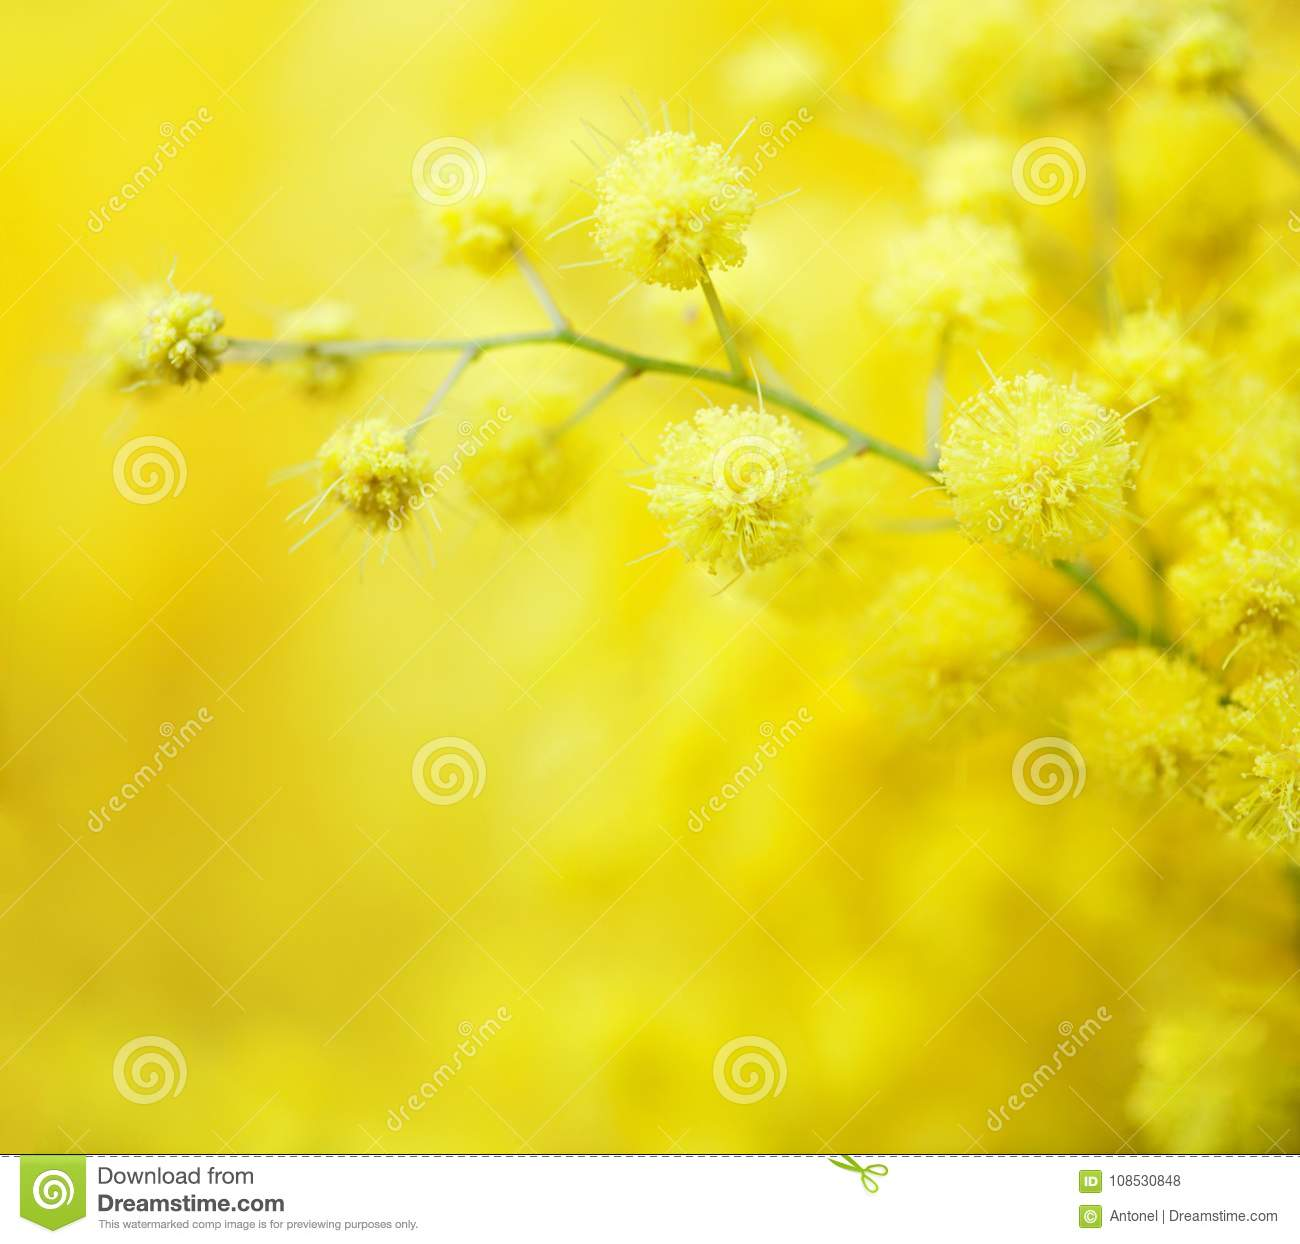 Close-up of mimosas yellow spring flowers on defocused yellow background. Very shallow depth of field. Selective focus